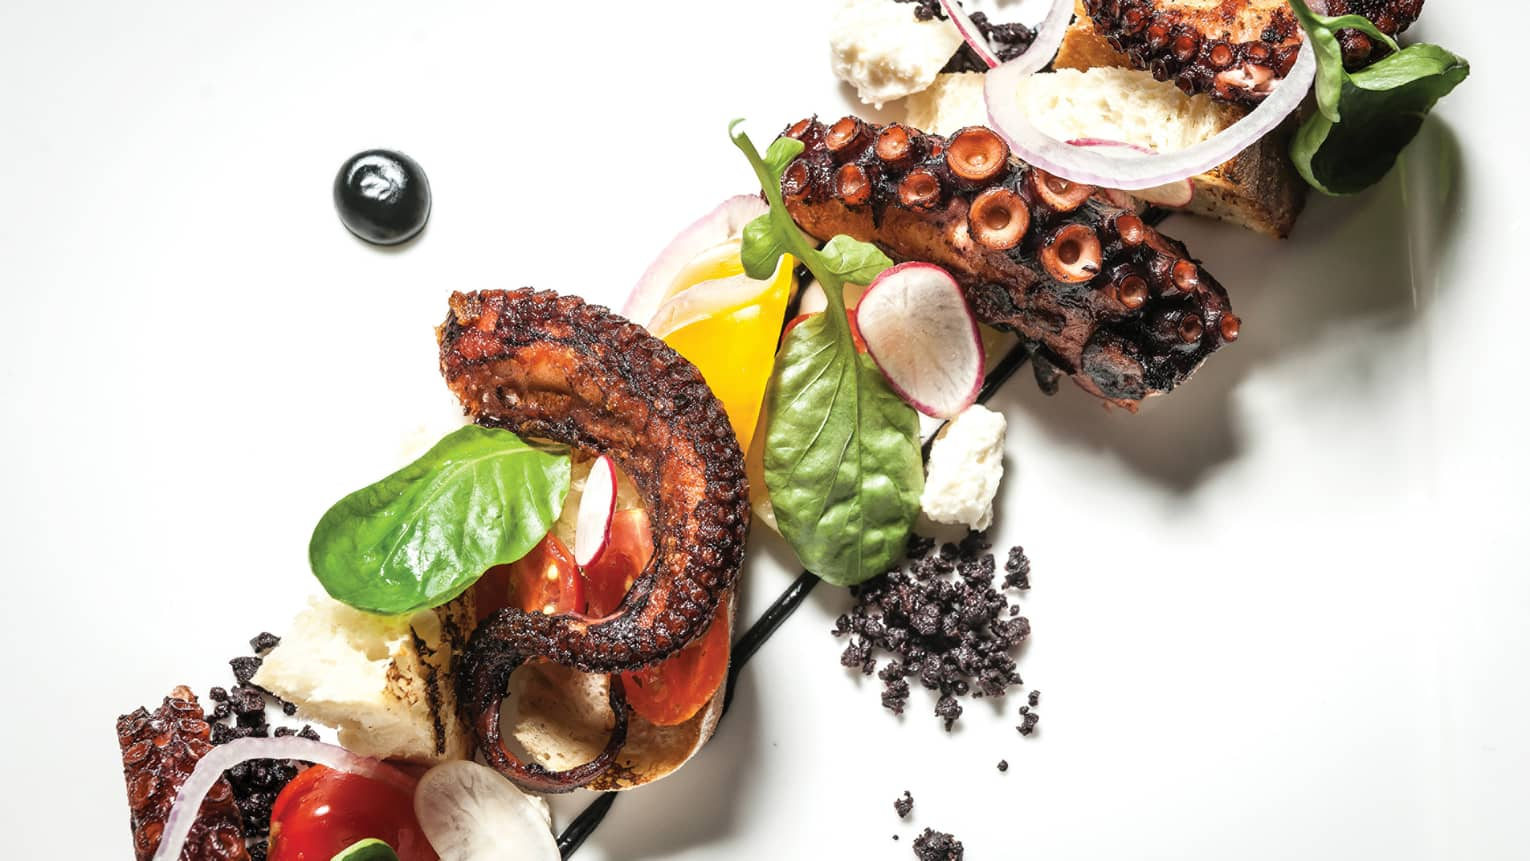 Grilled blackened octopus on platter with mixed greens, garlic chips, black olive crunch